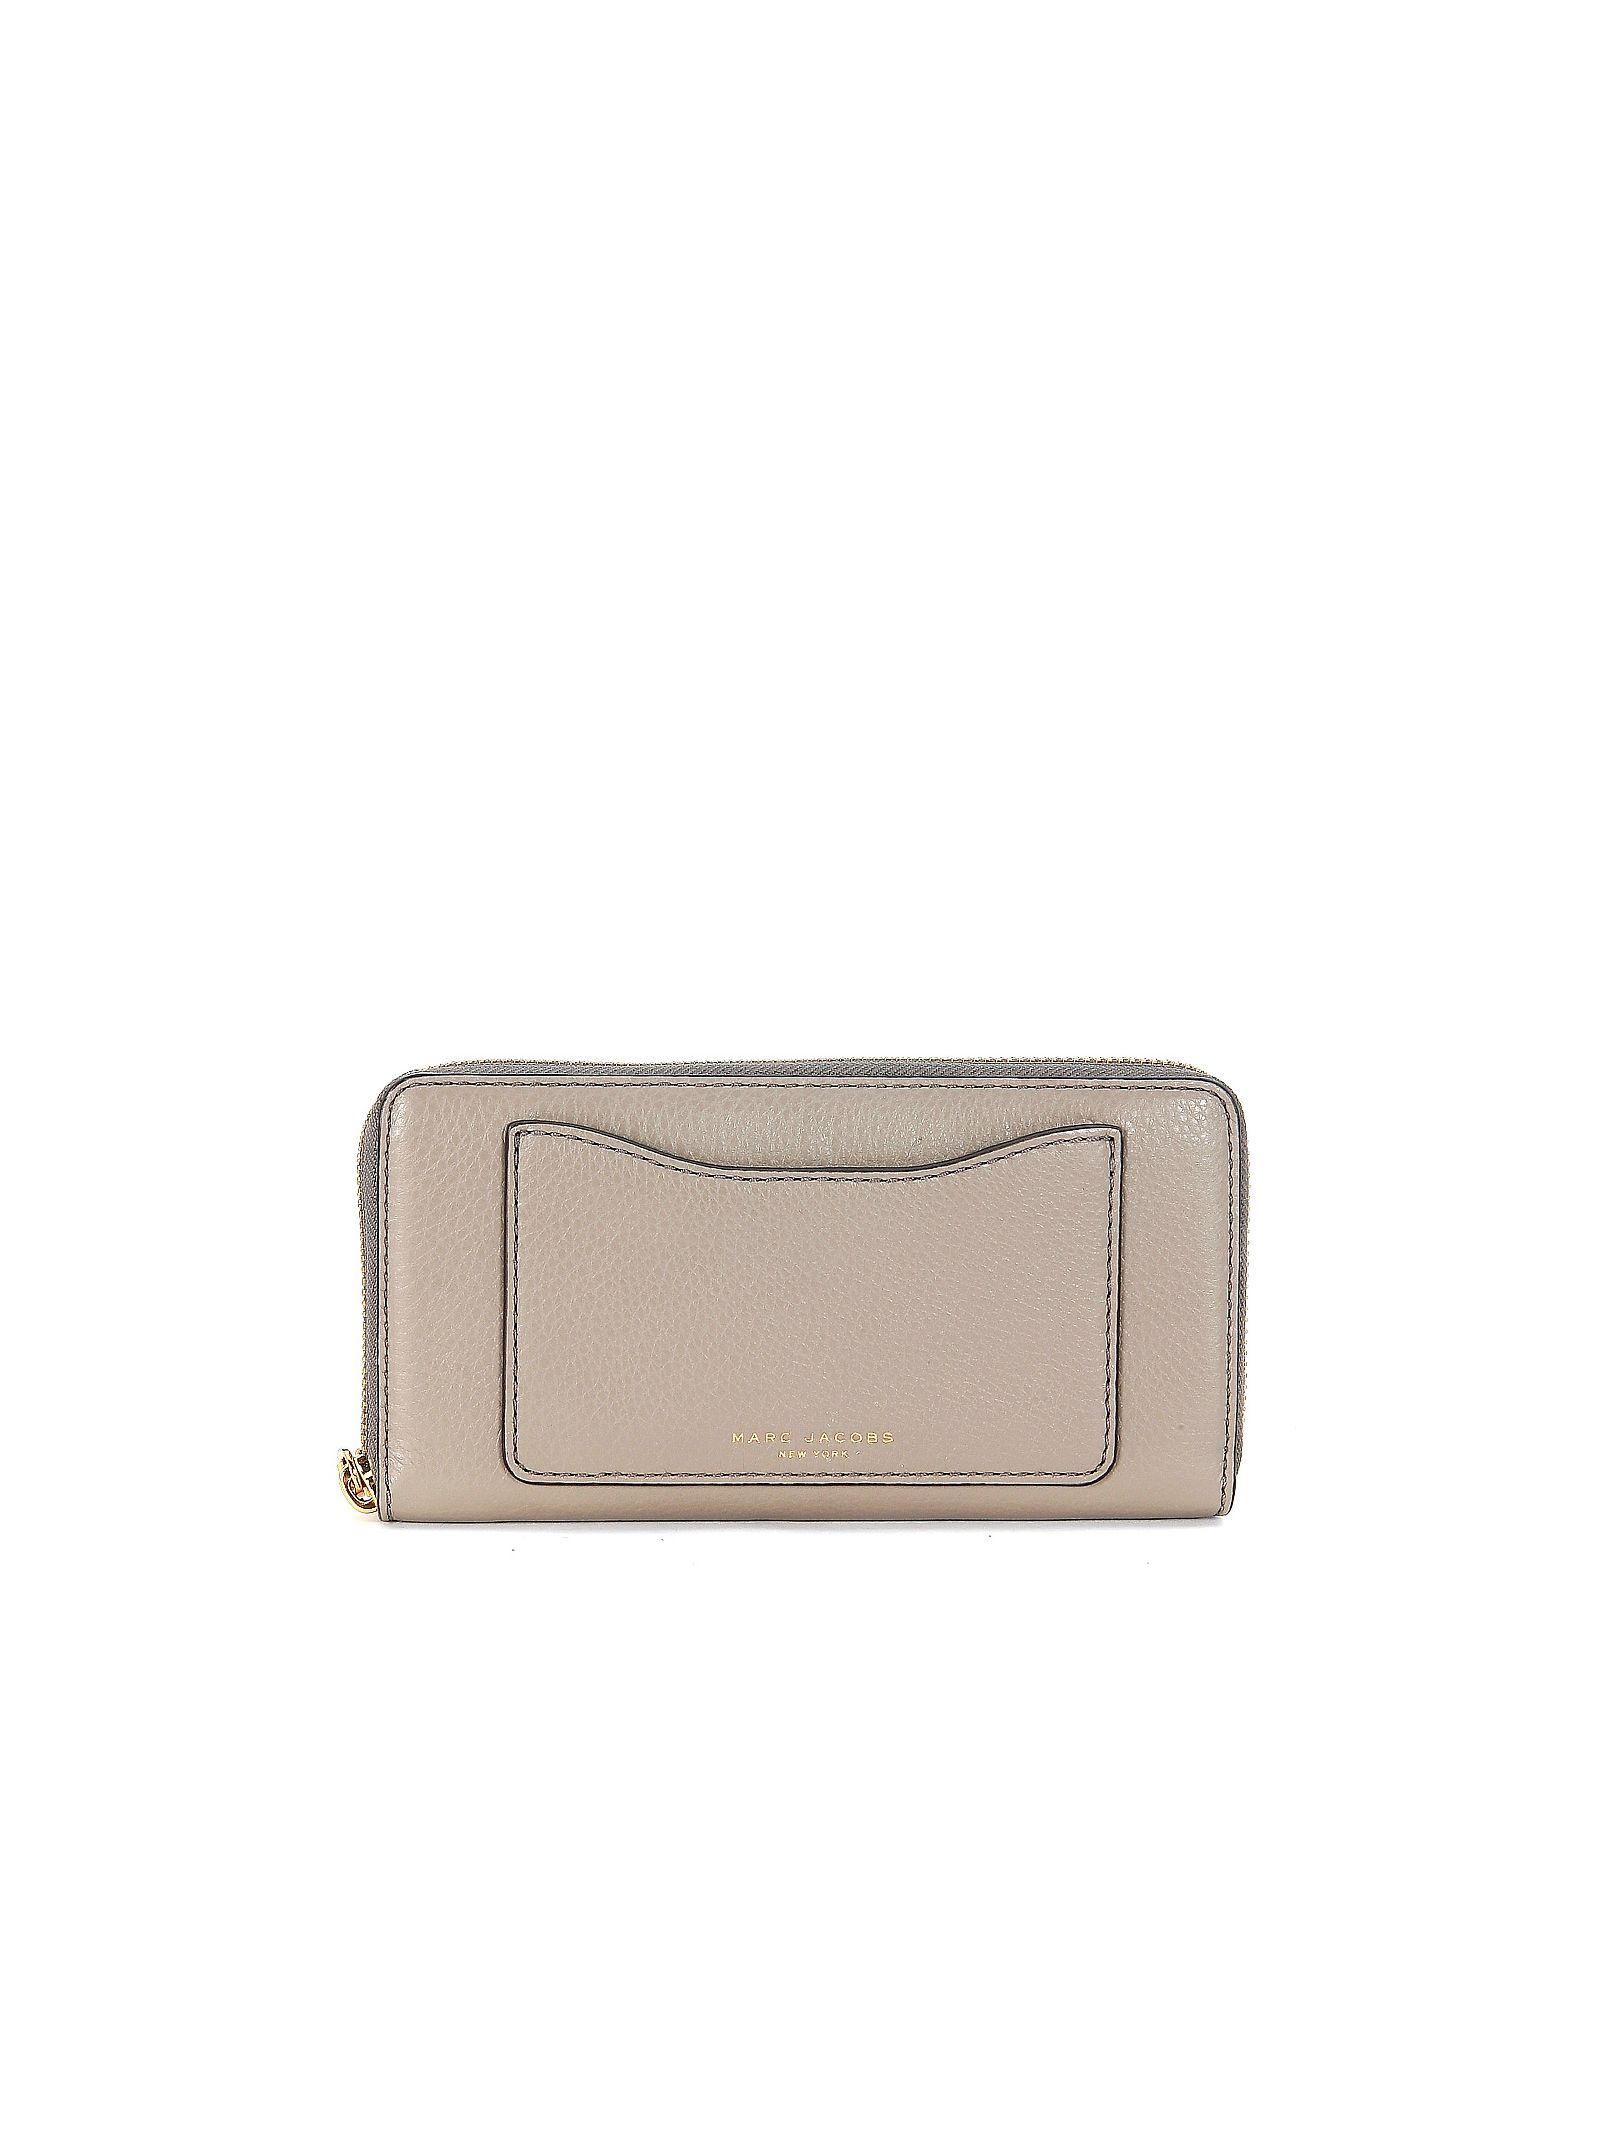 marc jacobs female  marc jacobs recruit slgs wallet in grey tumbled leather